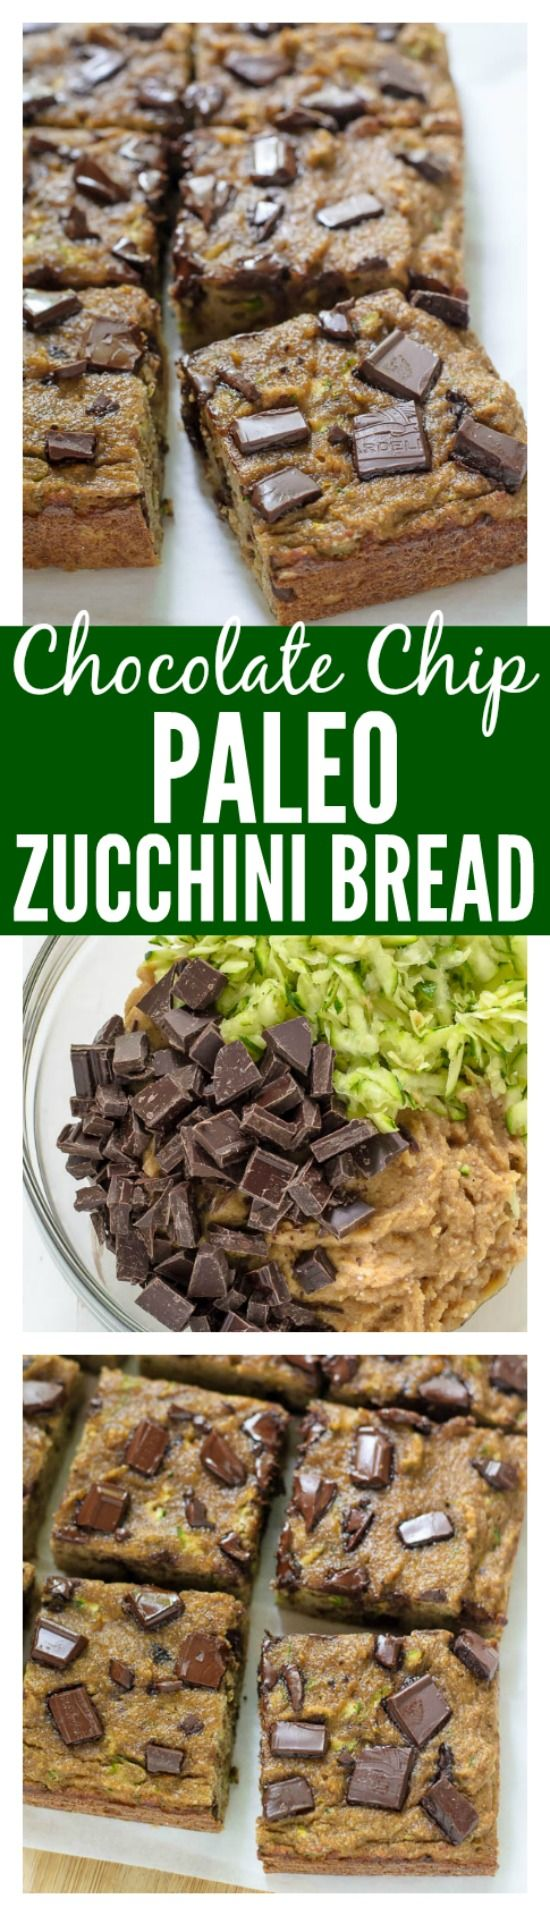 Chocolate Chip Paleo Zucchini Bread. Grain free, dairy free, and naturally sweetened!  #paleo #dairyfree #grainfree #cleaneating